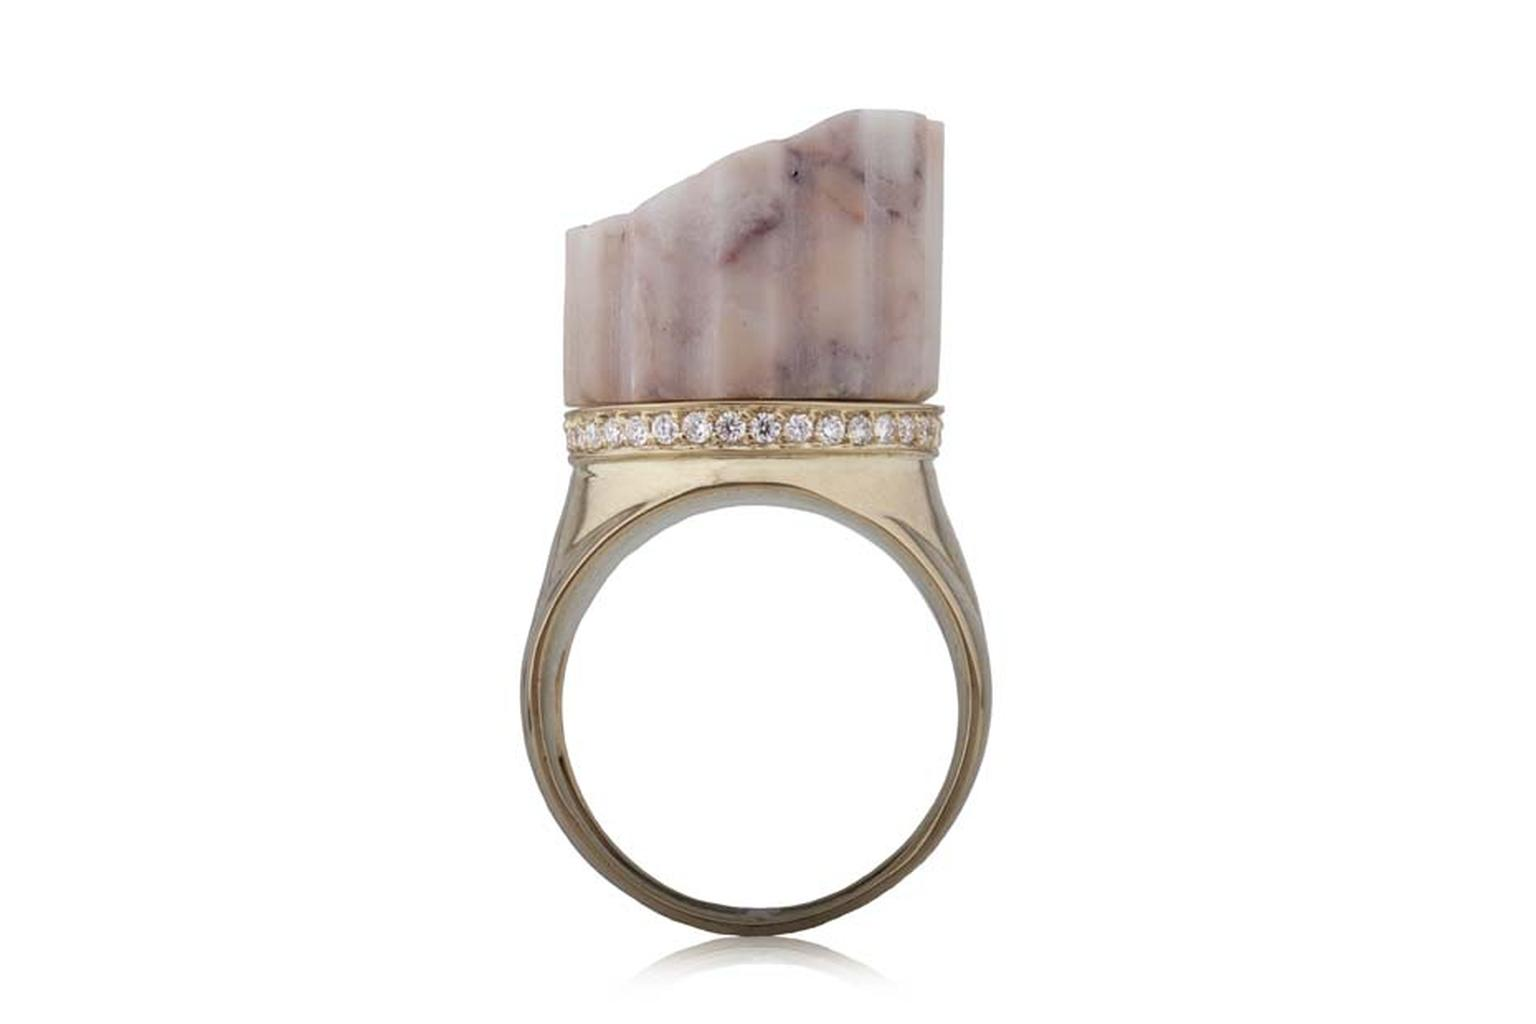 Maiyet gold geometric cage bangle featuring rose cut champagne diamonds, available at Latest Revival (4.88ct).